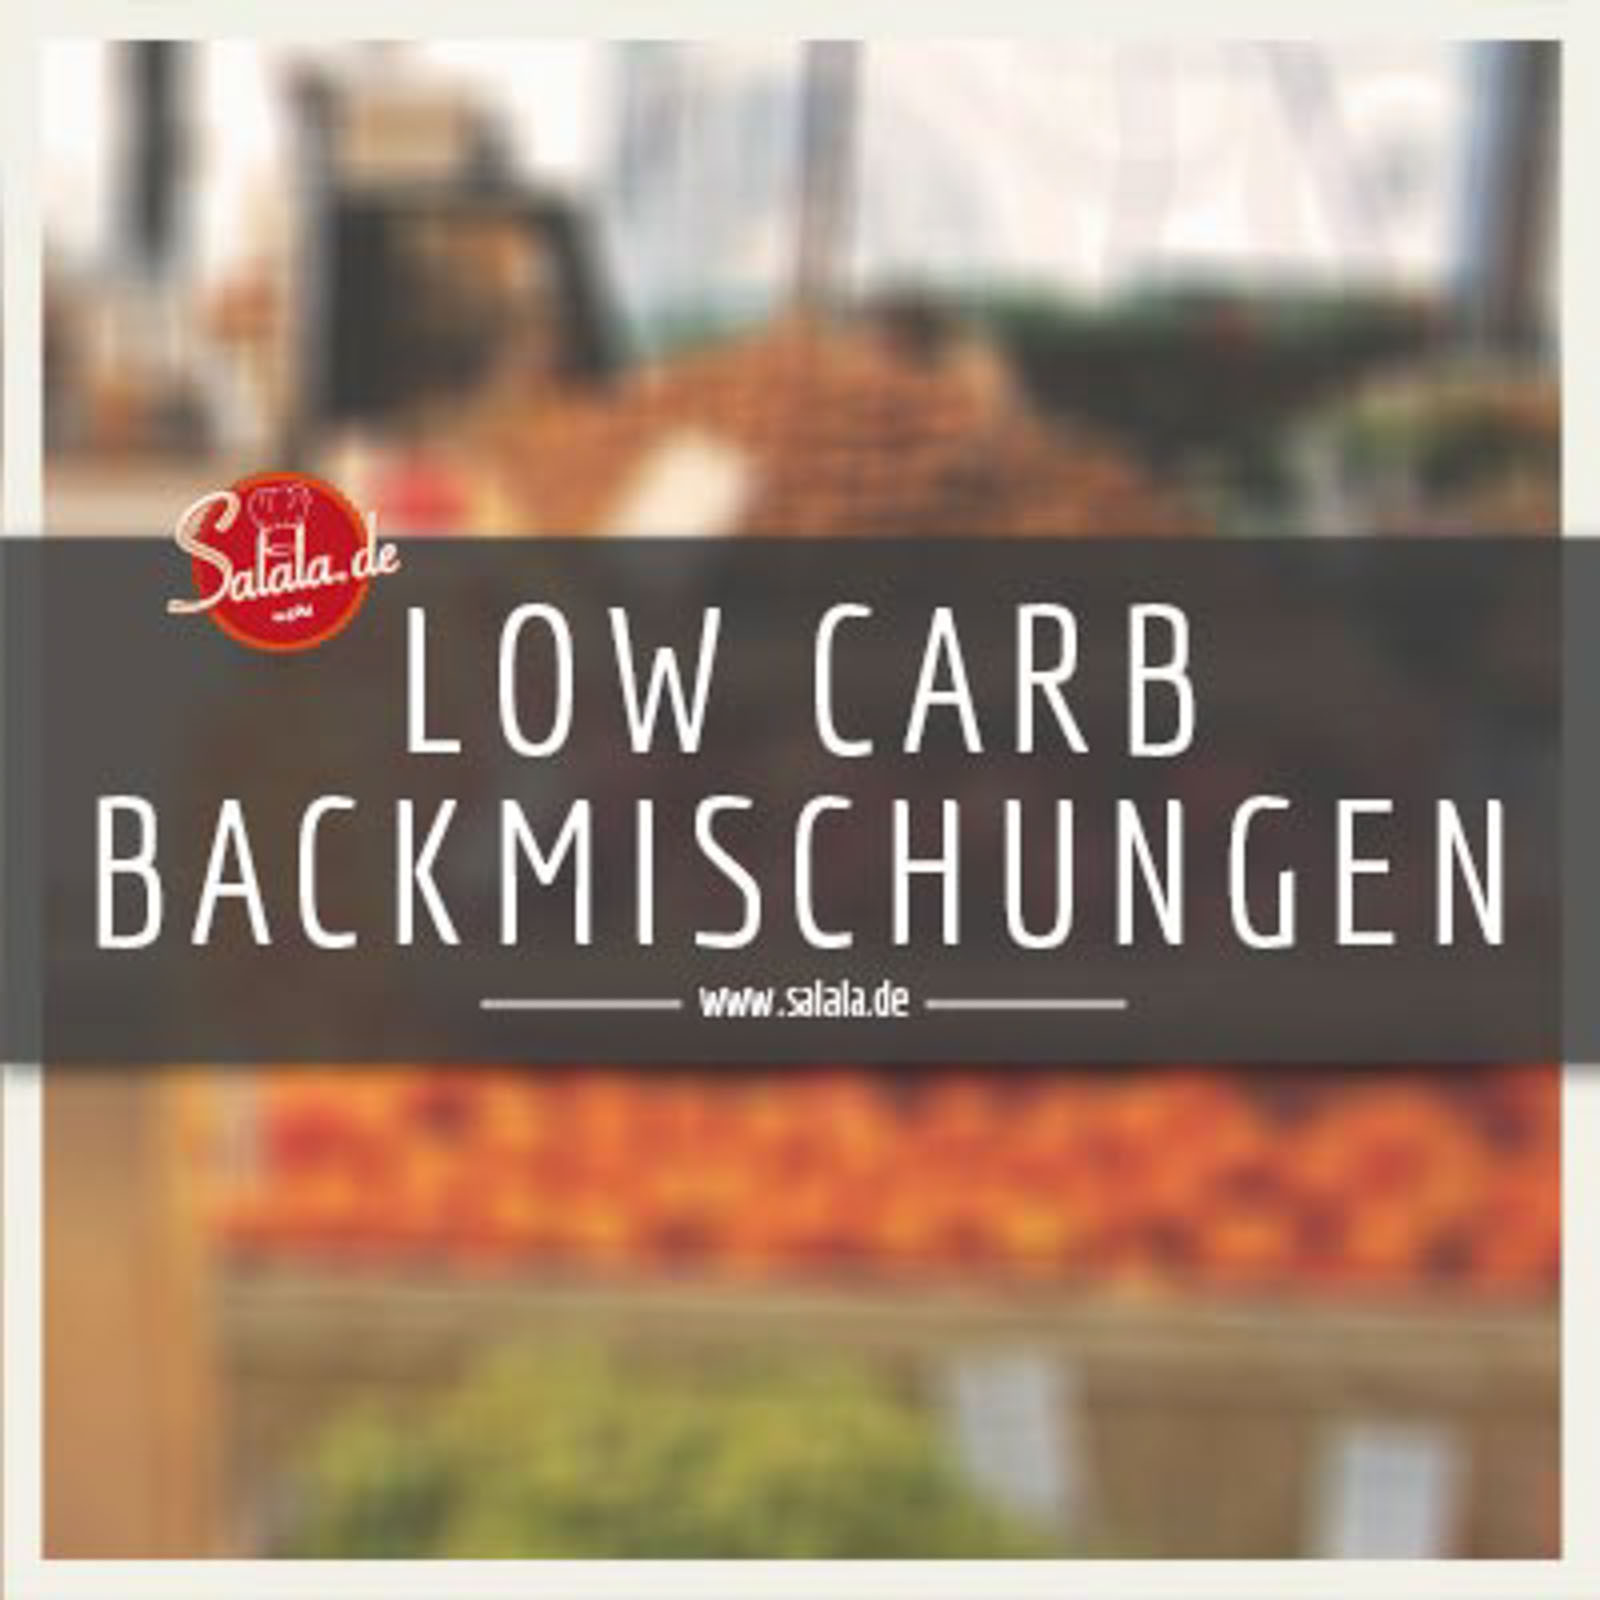 Low Carb Backmischungen